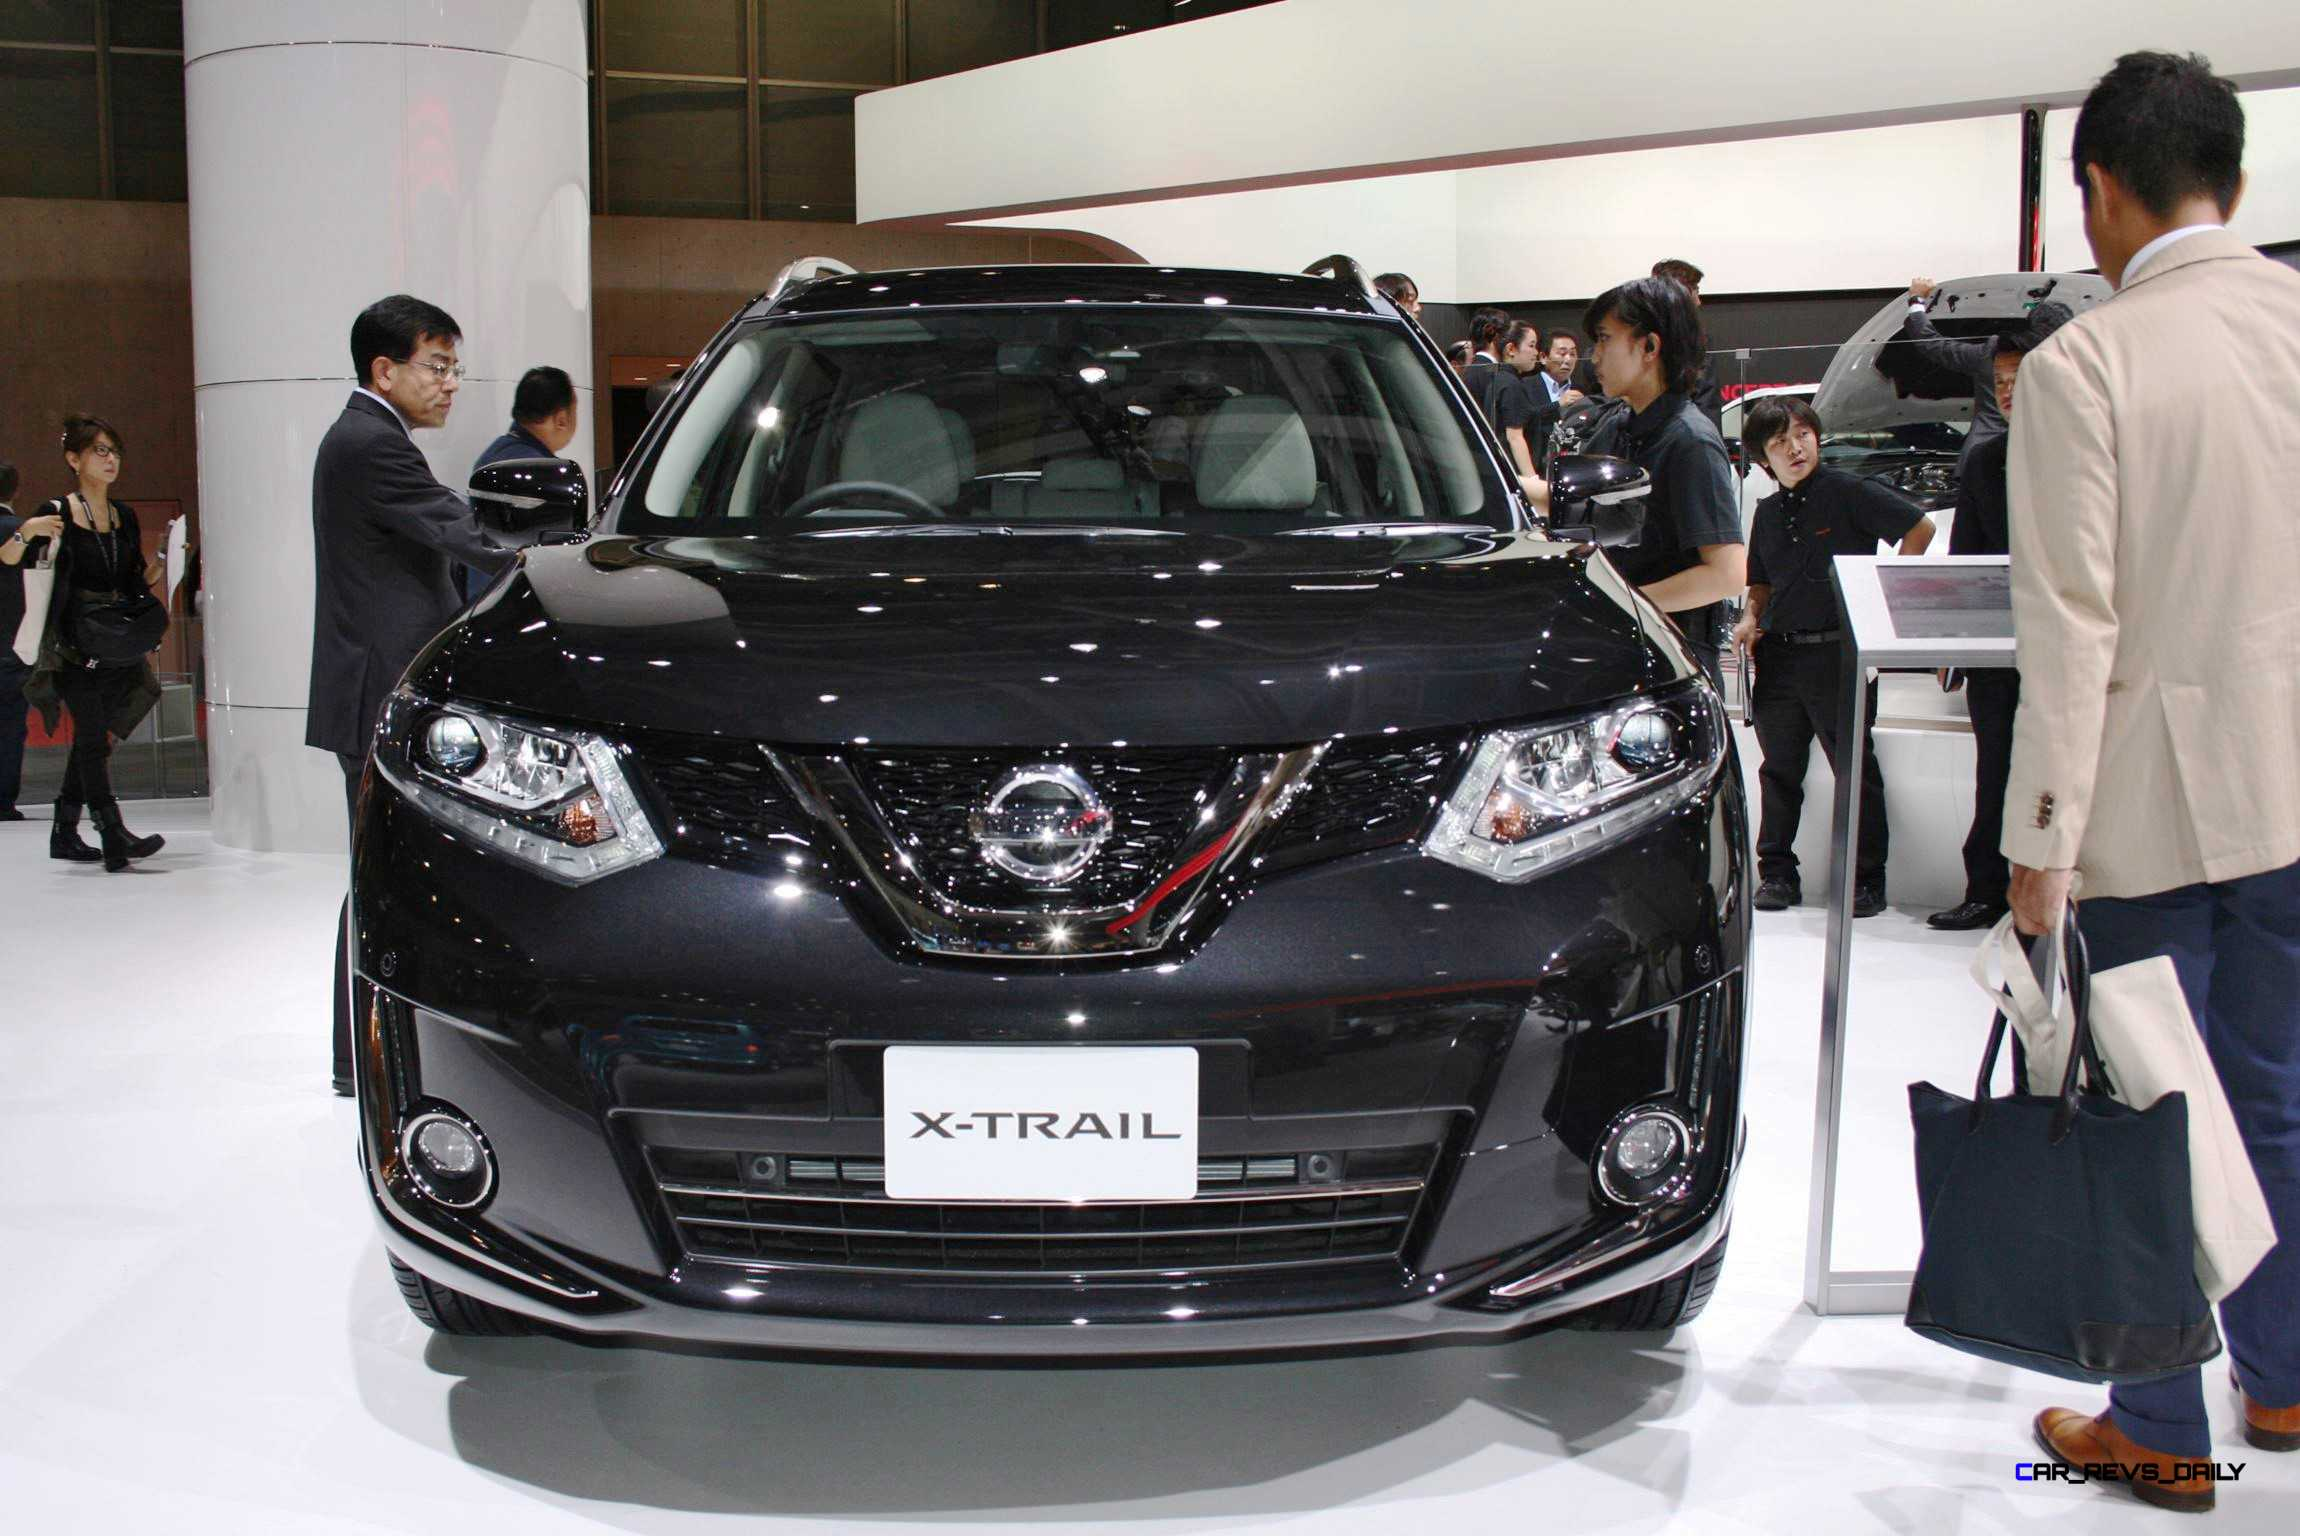 Nissan-X-Trail-Hybrid-3-copy.jpg